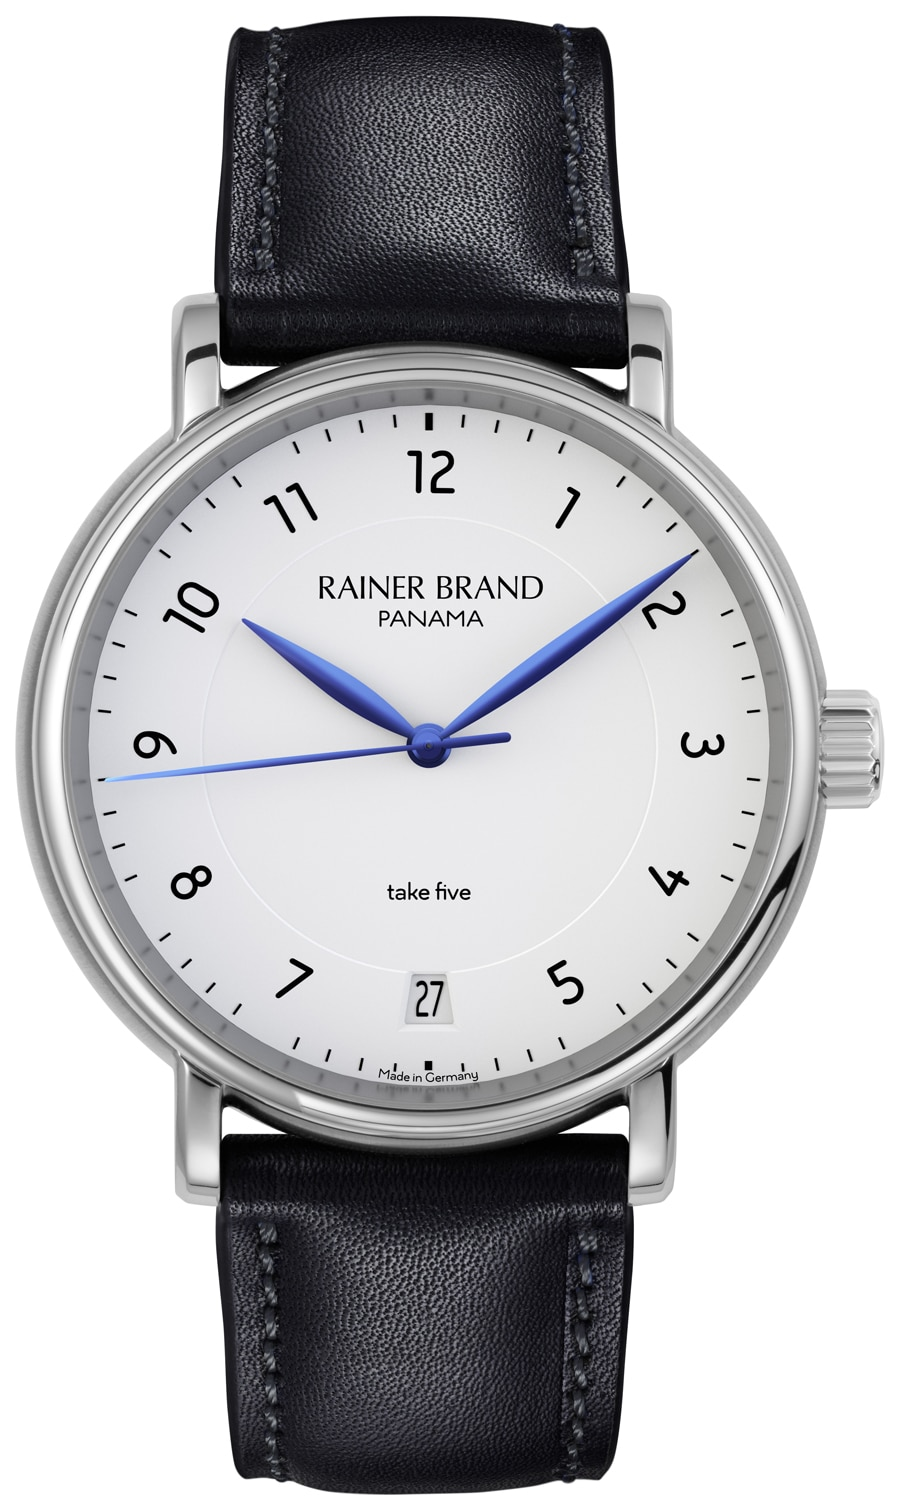 Watches Made in Germany – Watches from Rainer Brand